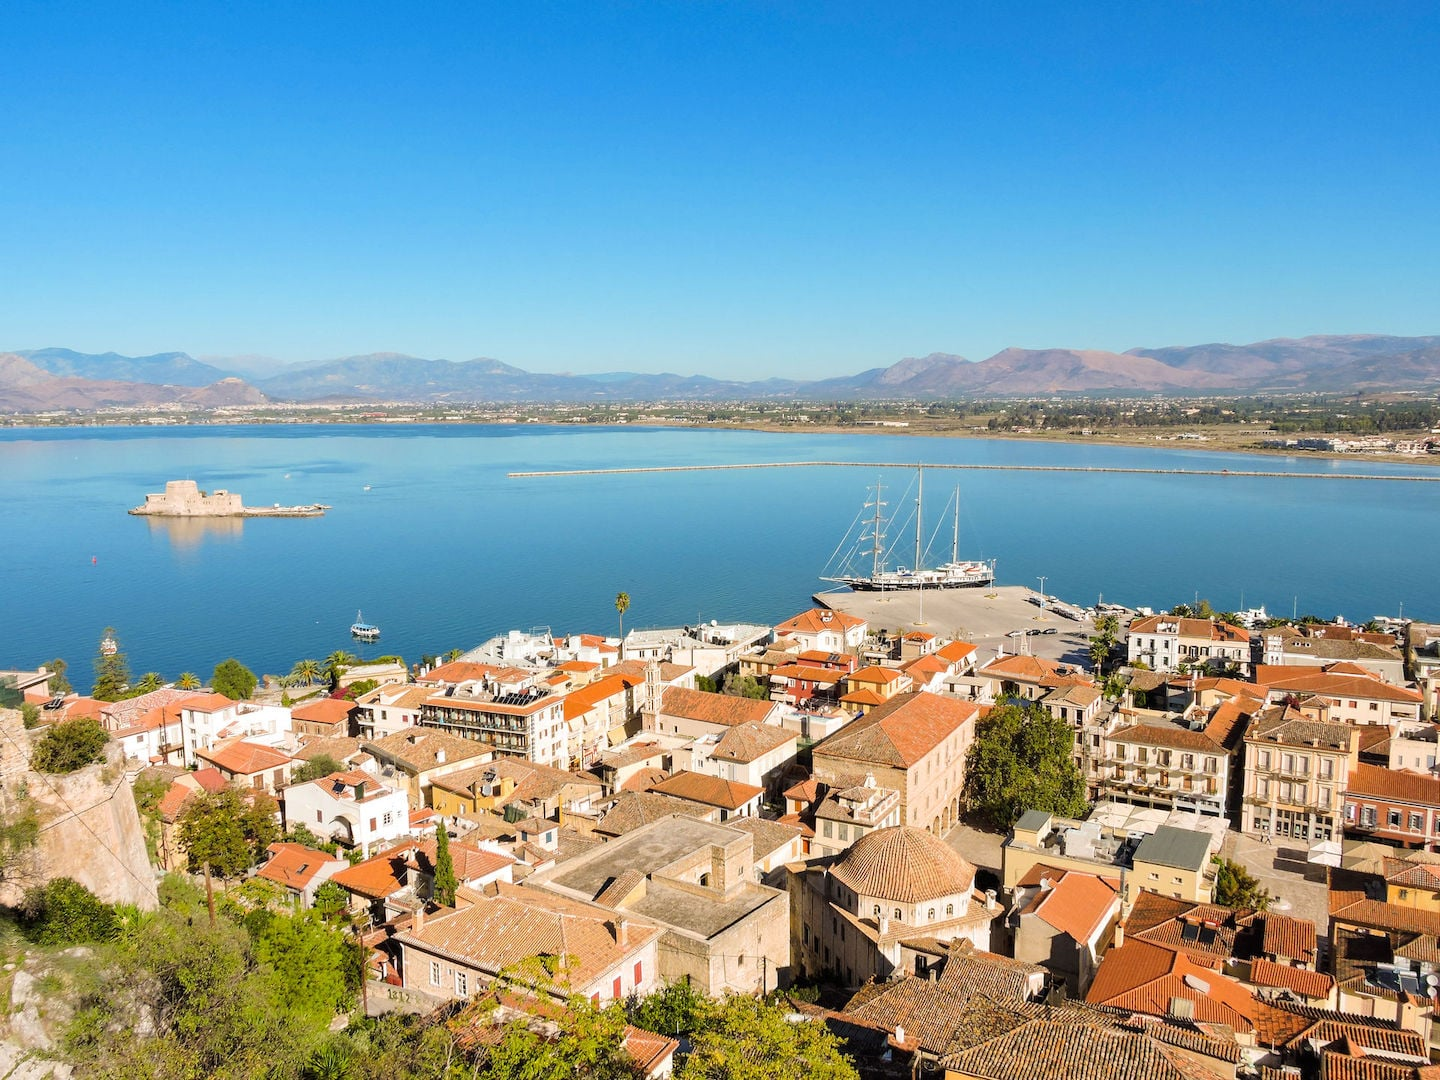 Overview photo of Nafplio in Argolis. Nafplio is a beachfront city and first capital of free Greece.